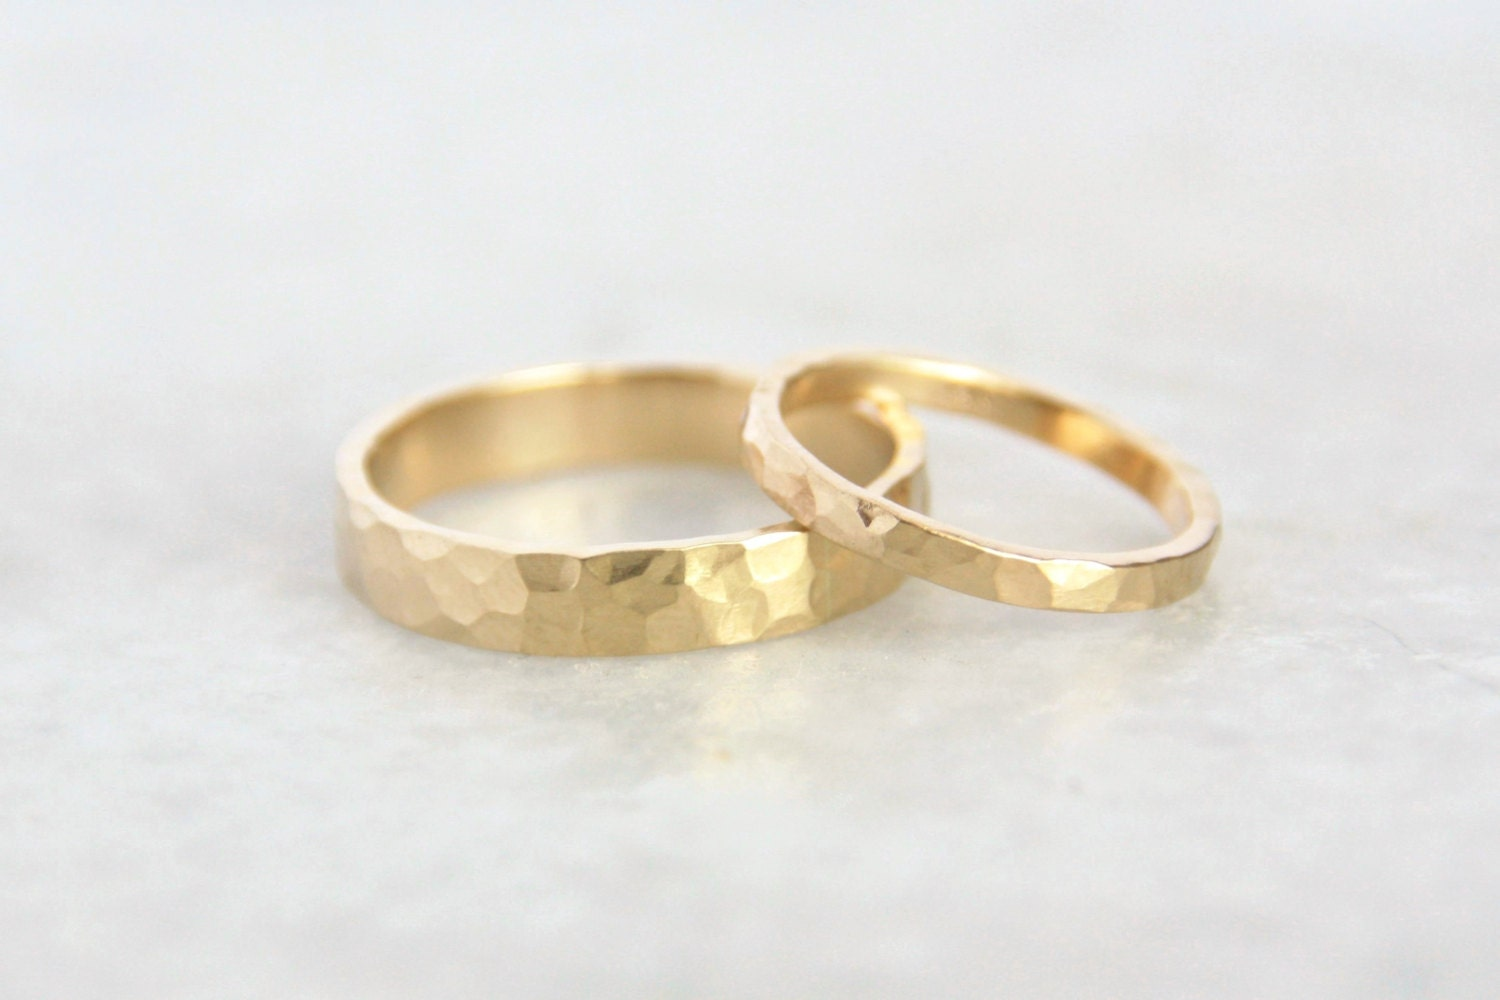 Hammered Gold Wedding Rings 14k Gold Ring Set By TorchfireStudio